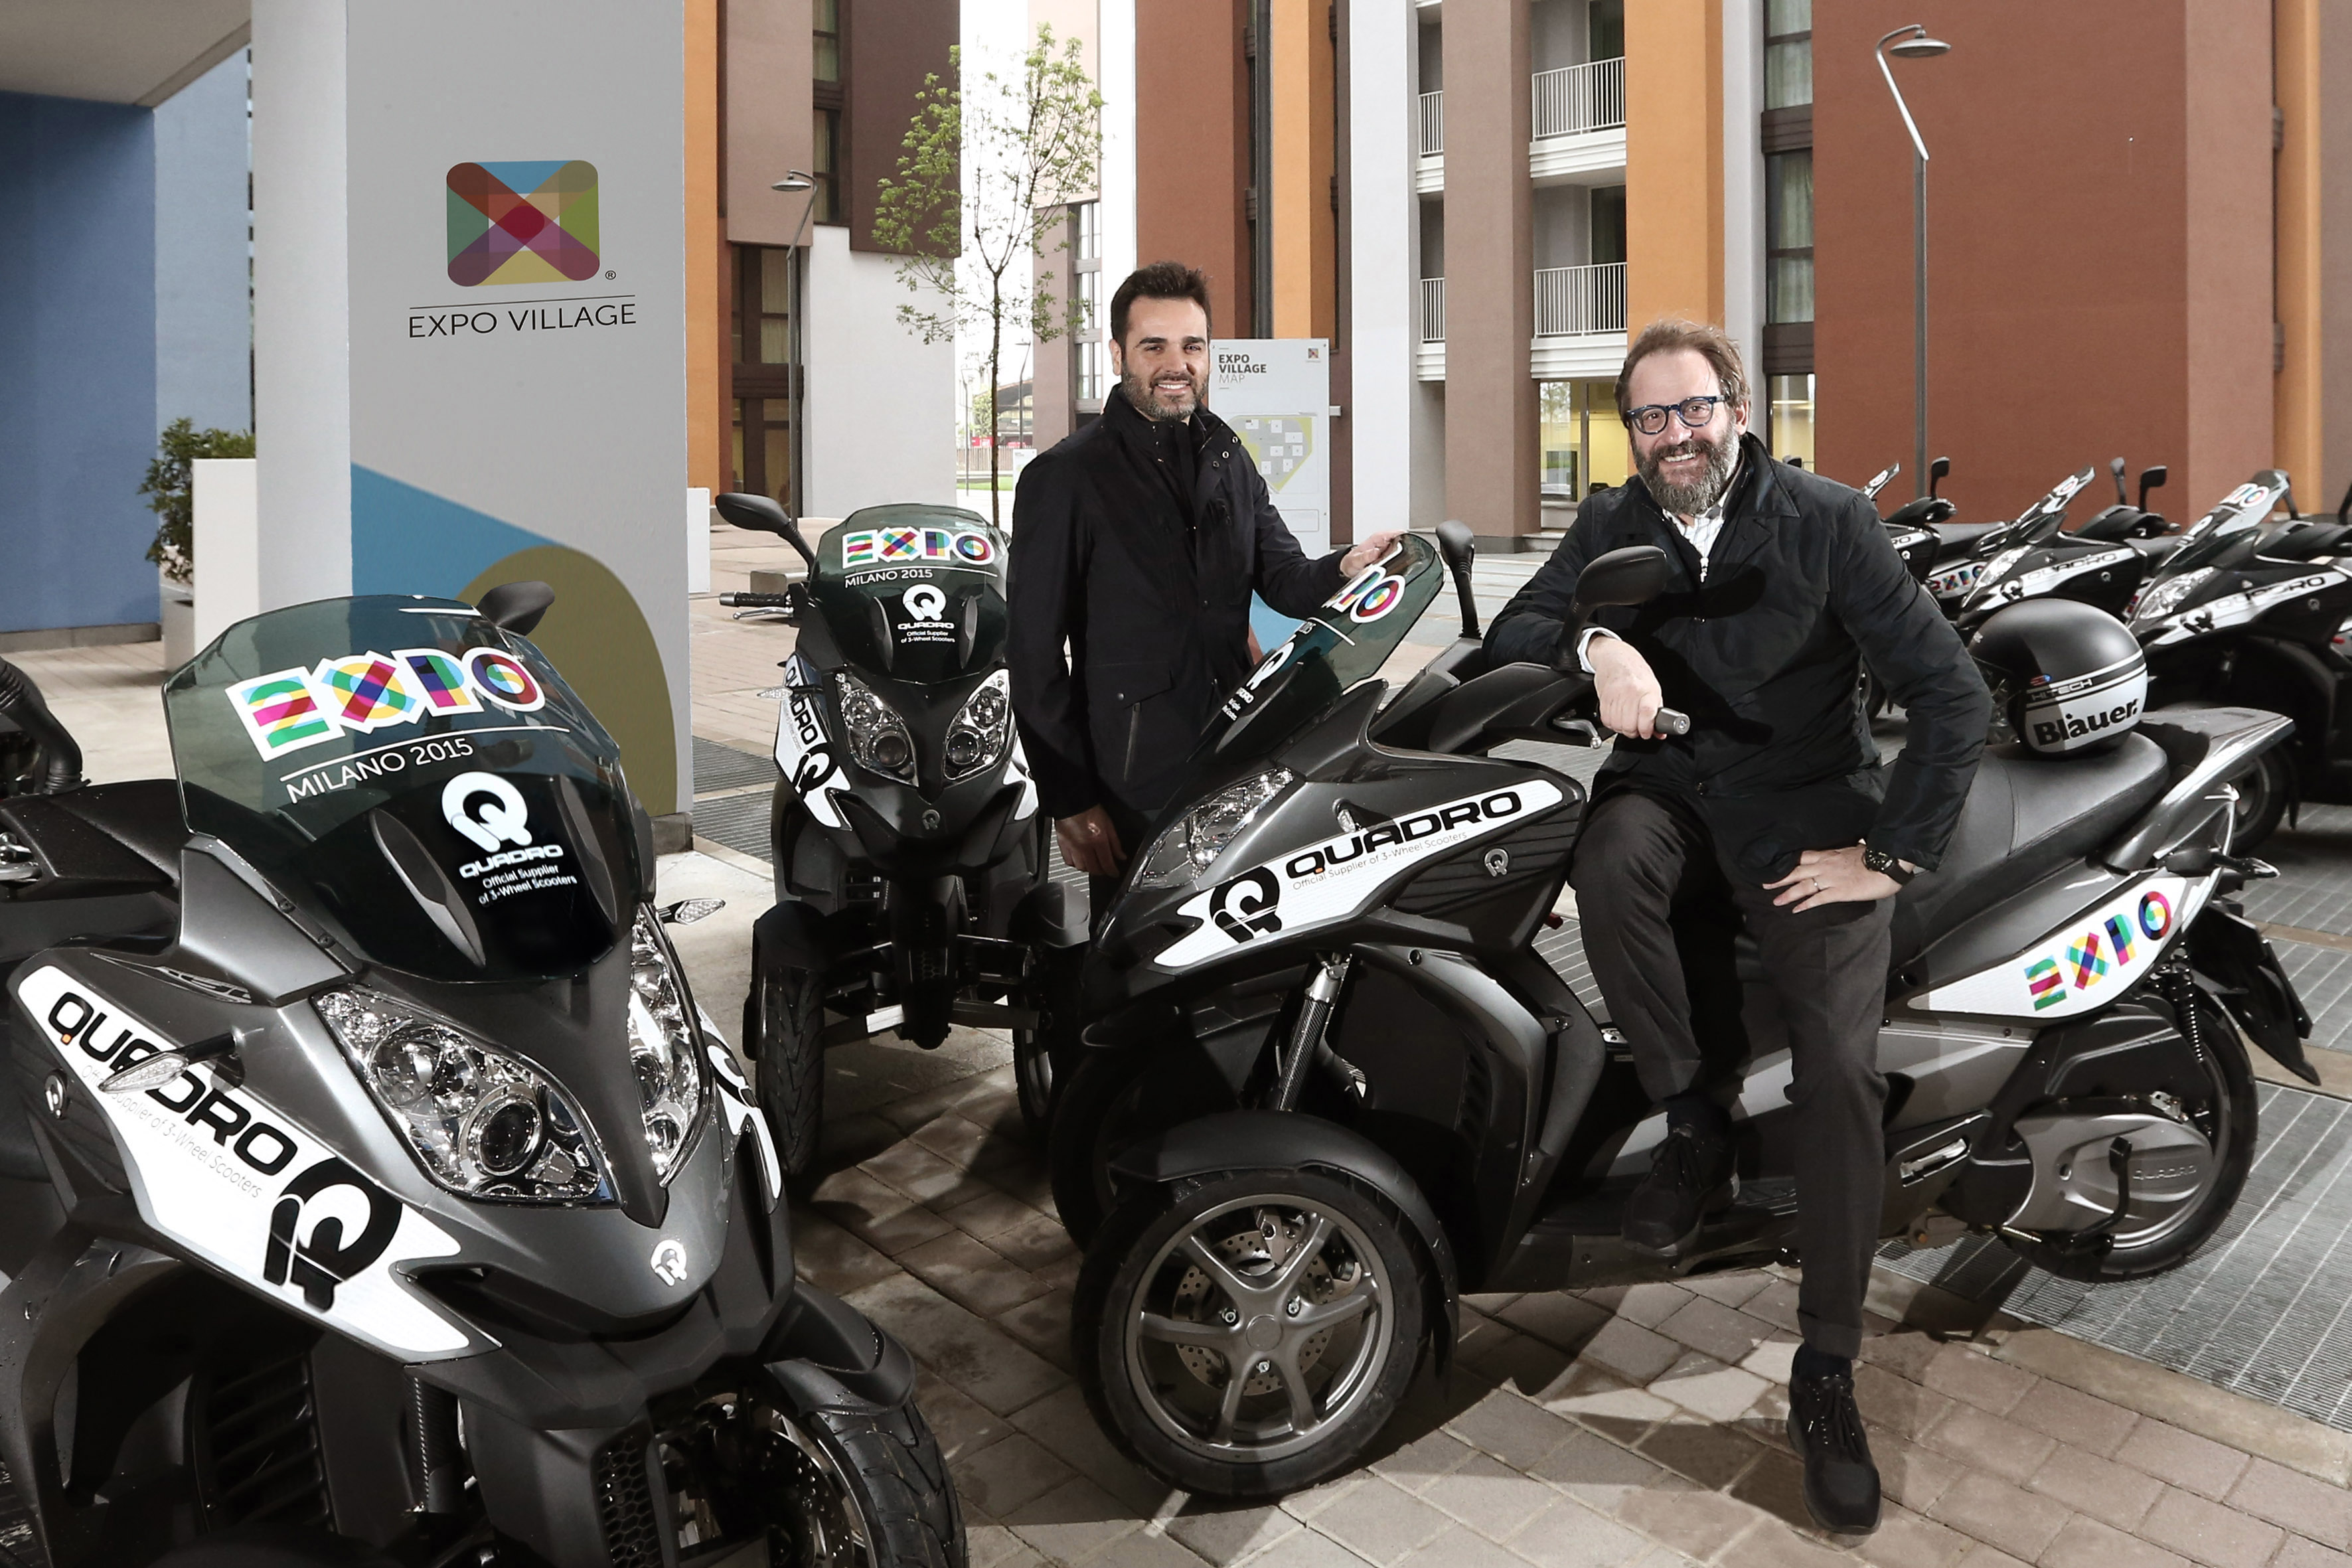 QUADRO official supplier 3-WHEEL scooters EXPO2015